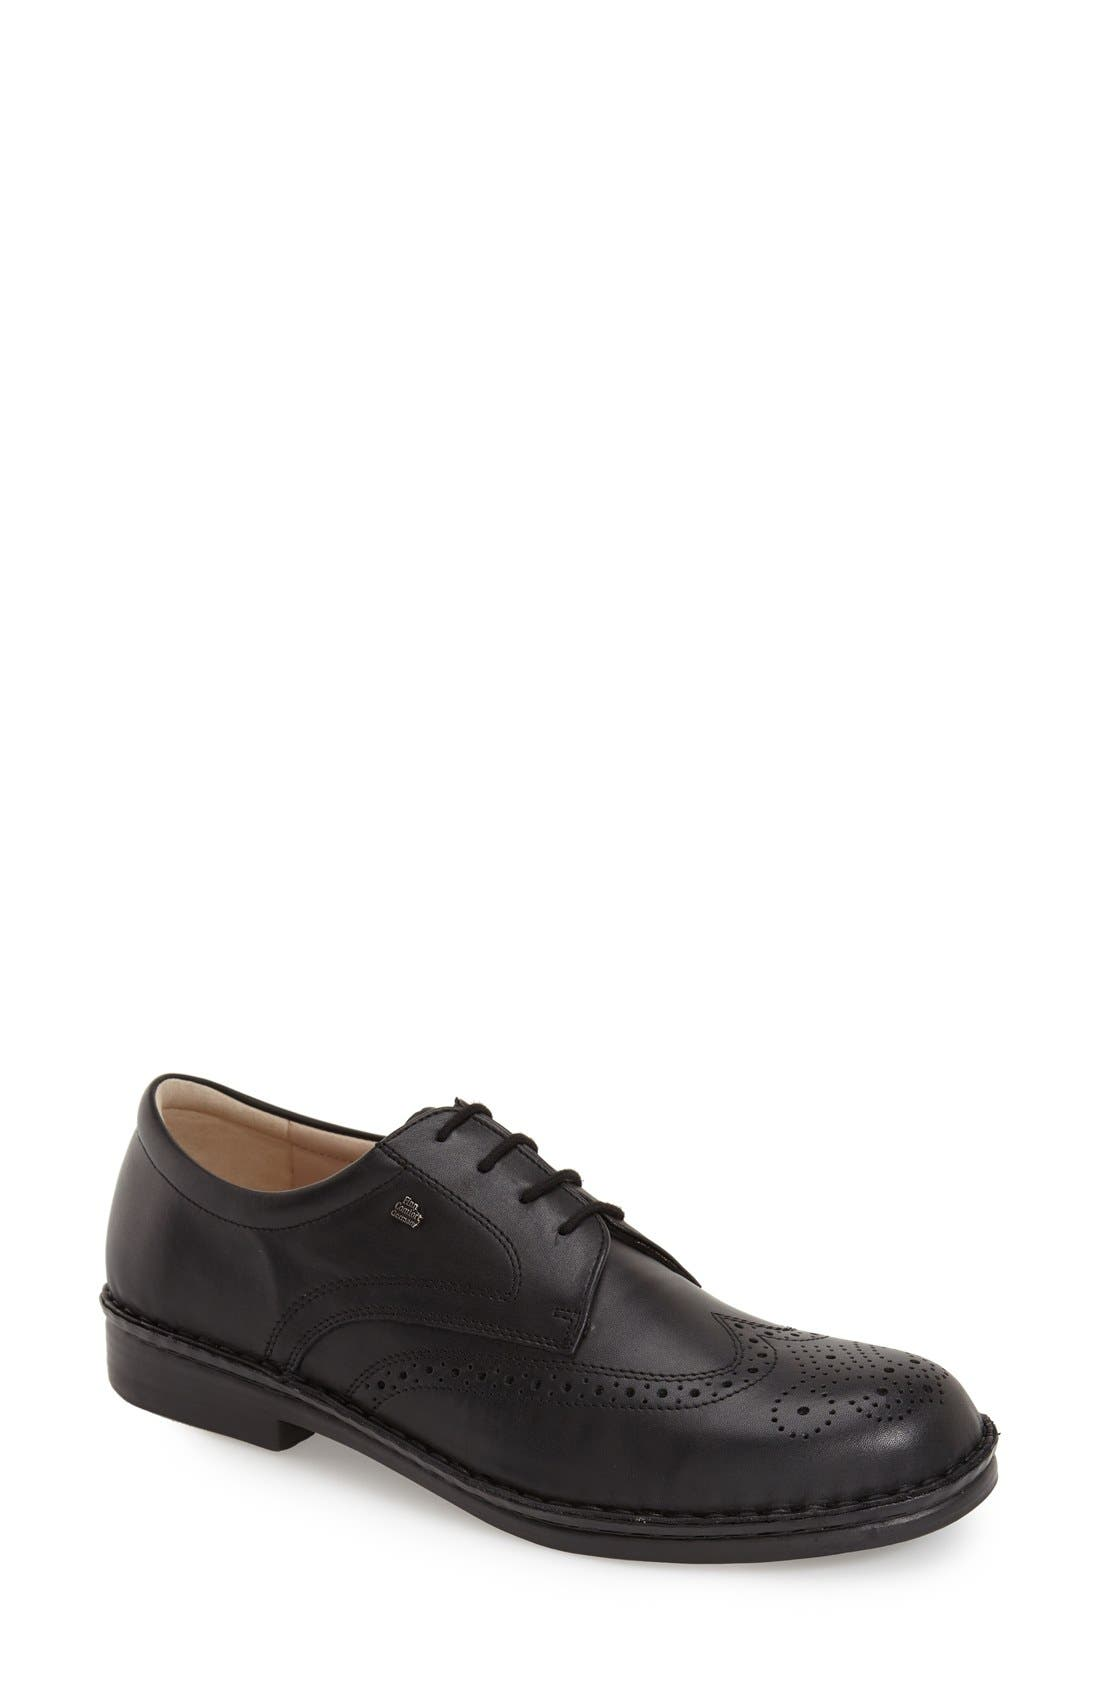 'Budapest' Oxford,                         Main,                         color, Black Leather